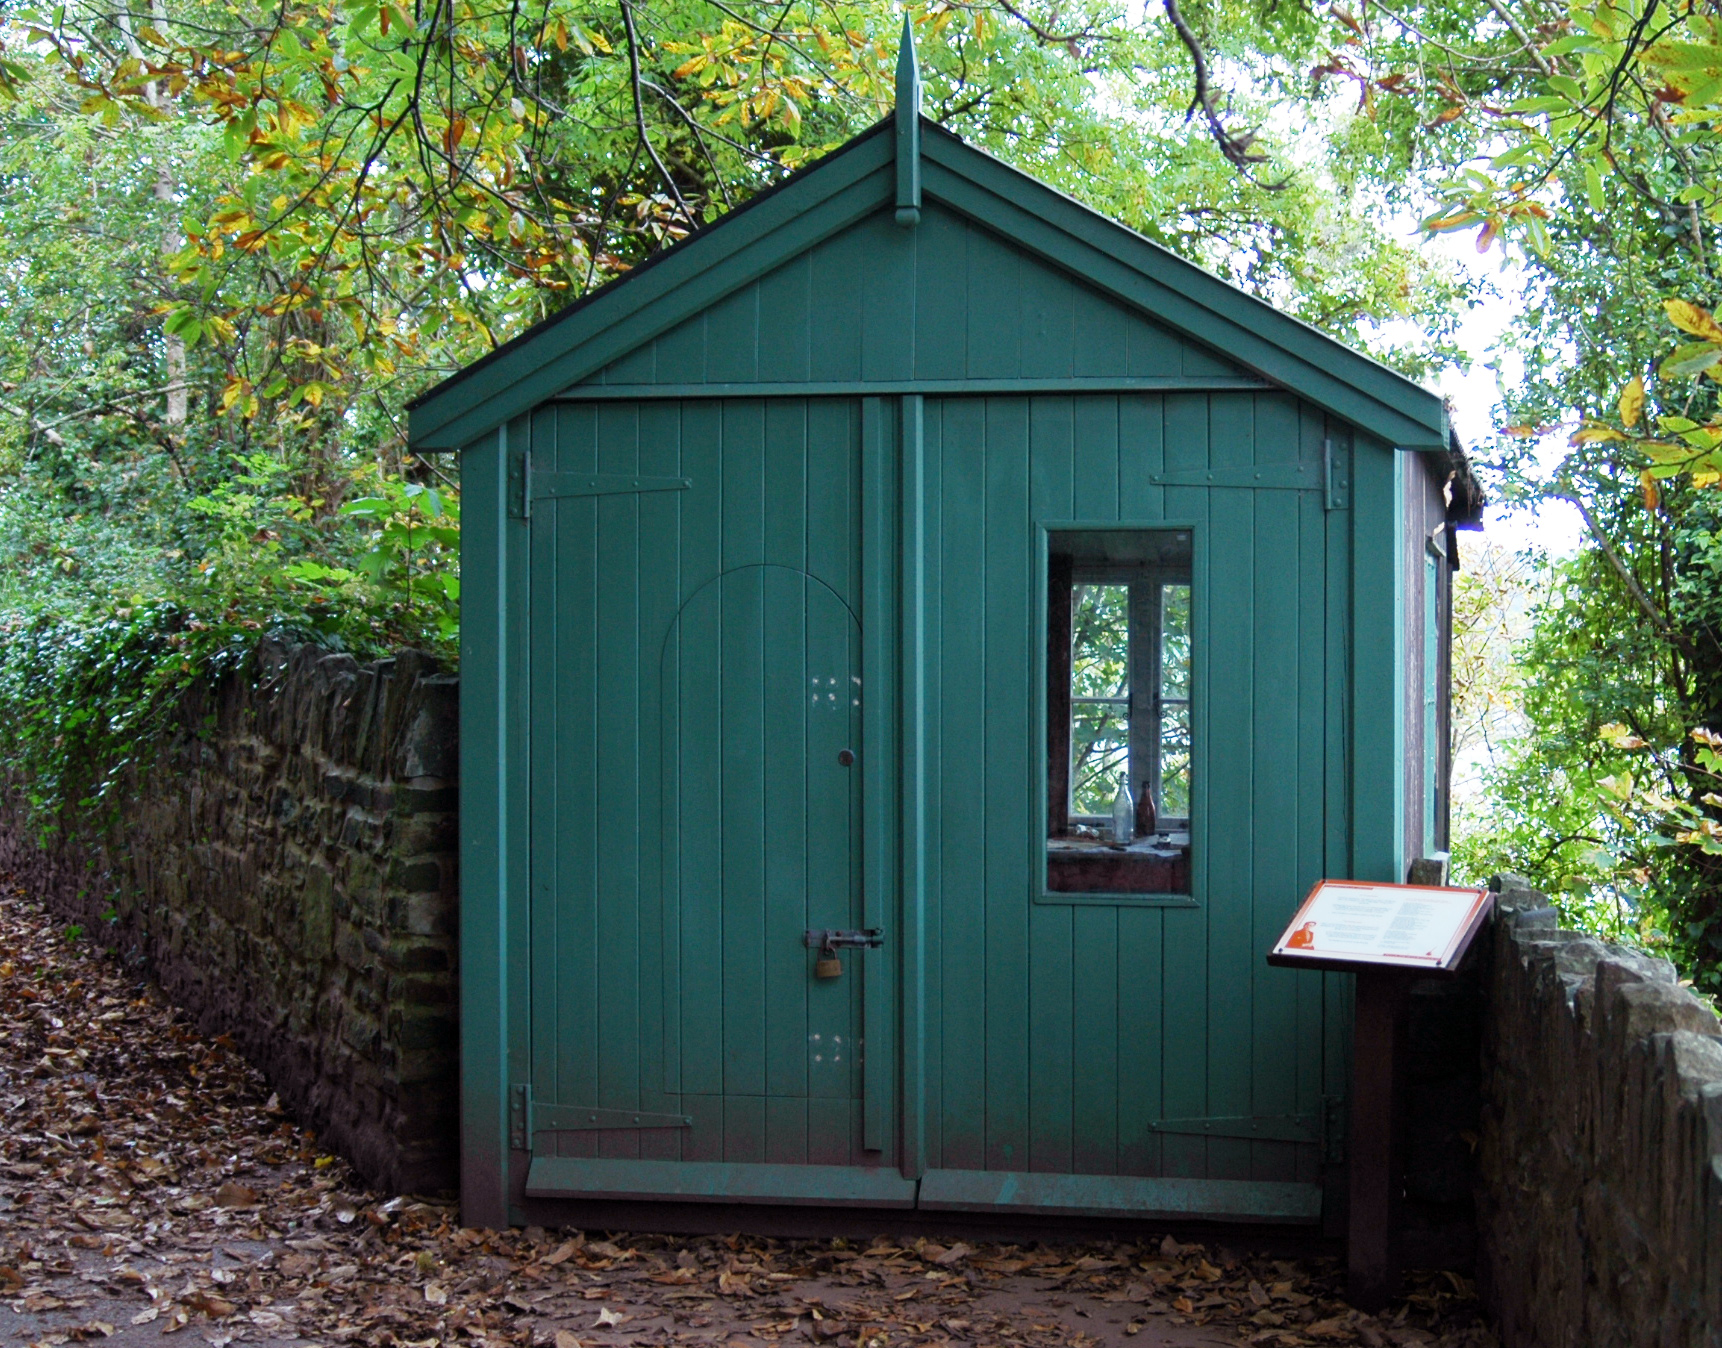 Wales_Laugharne_Dylans_writing_hut